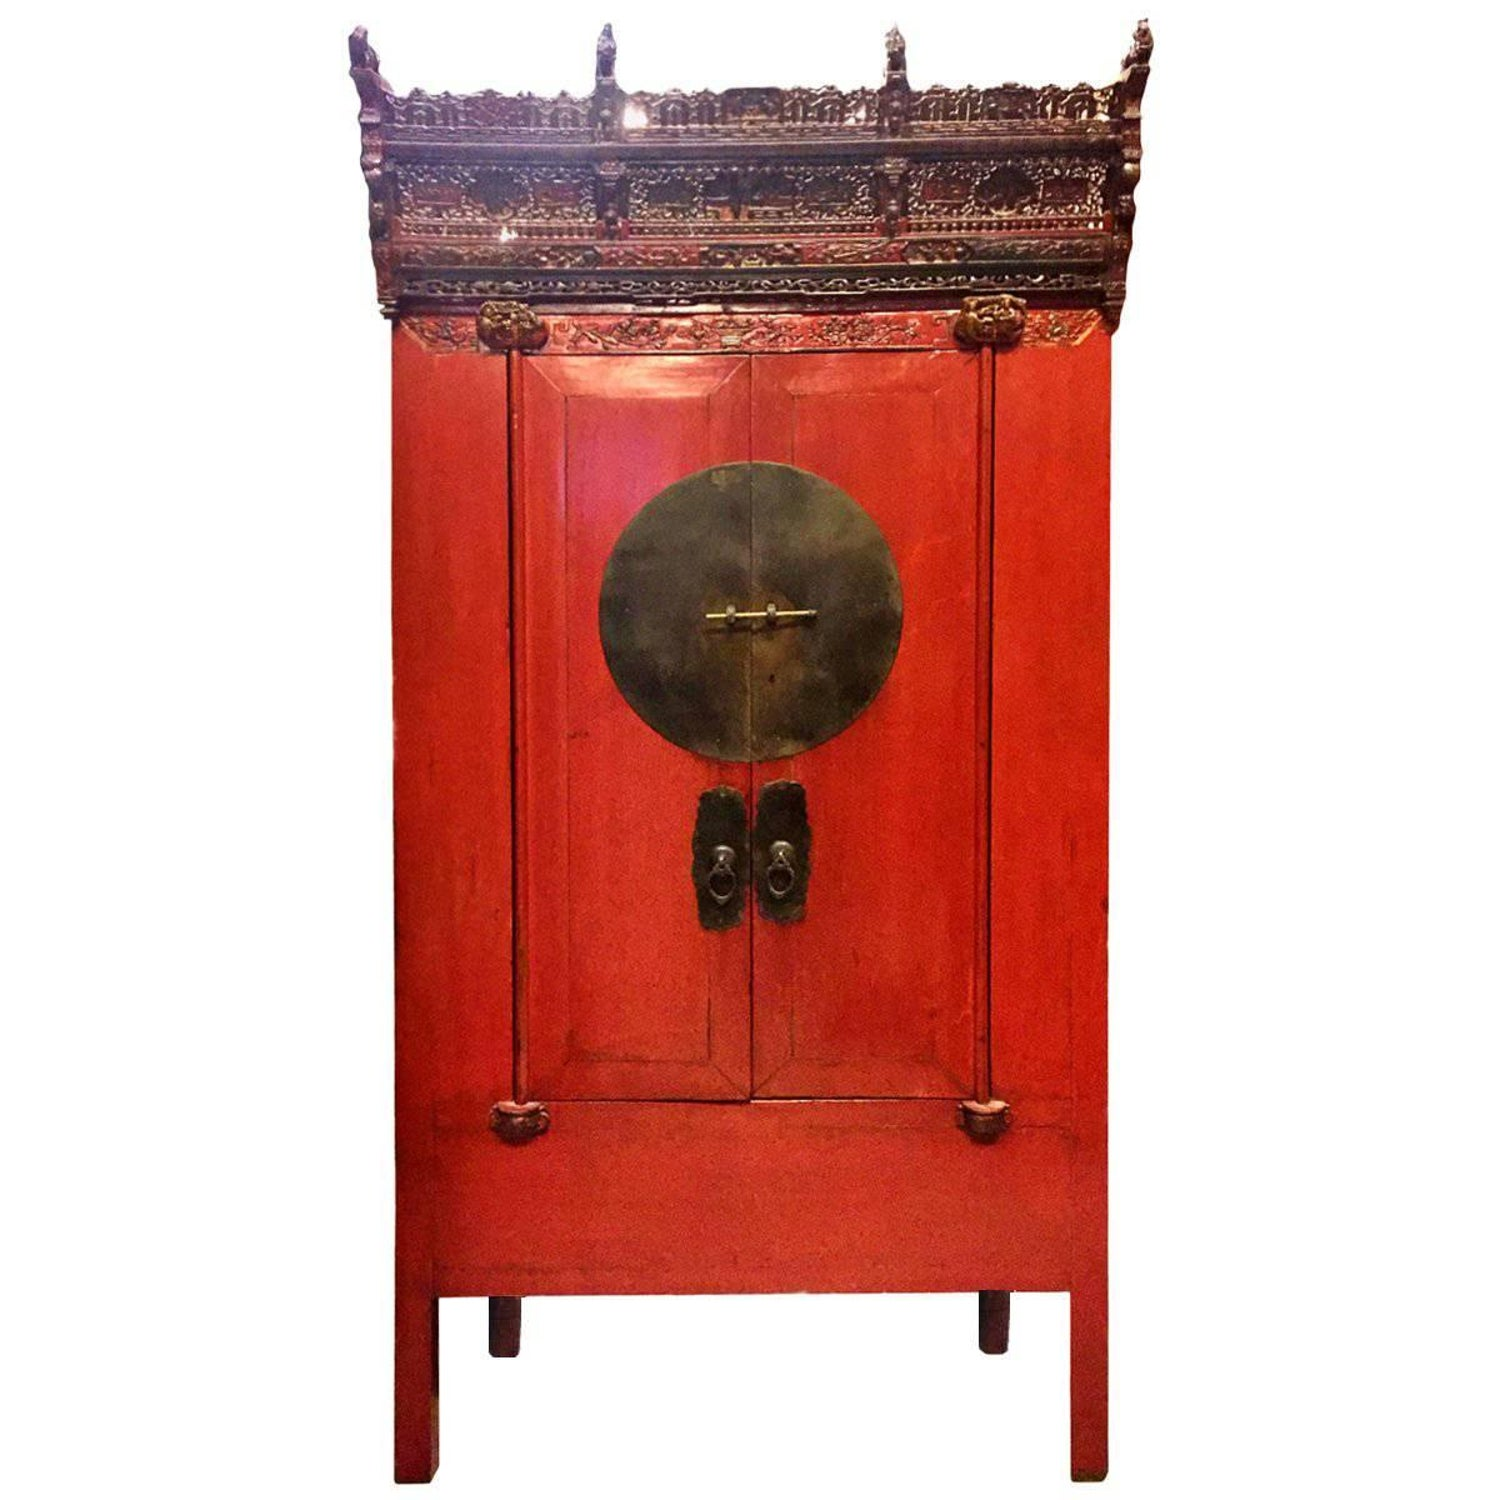 Antique Chinese Red Lacquer Wedding Cabinet with Crown, 19th Century, Rare  For Sale at 1stdibs - Antique Chinese Red Lacquer Wedding Cabinet With Crown, 19th